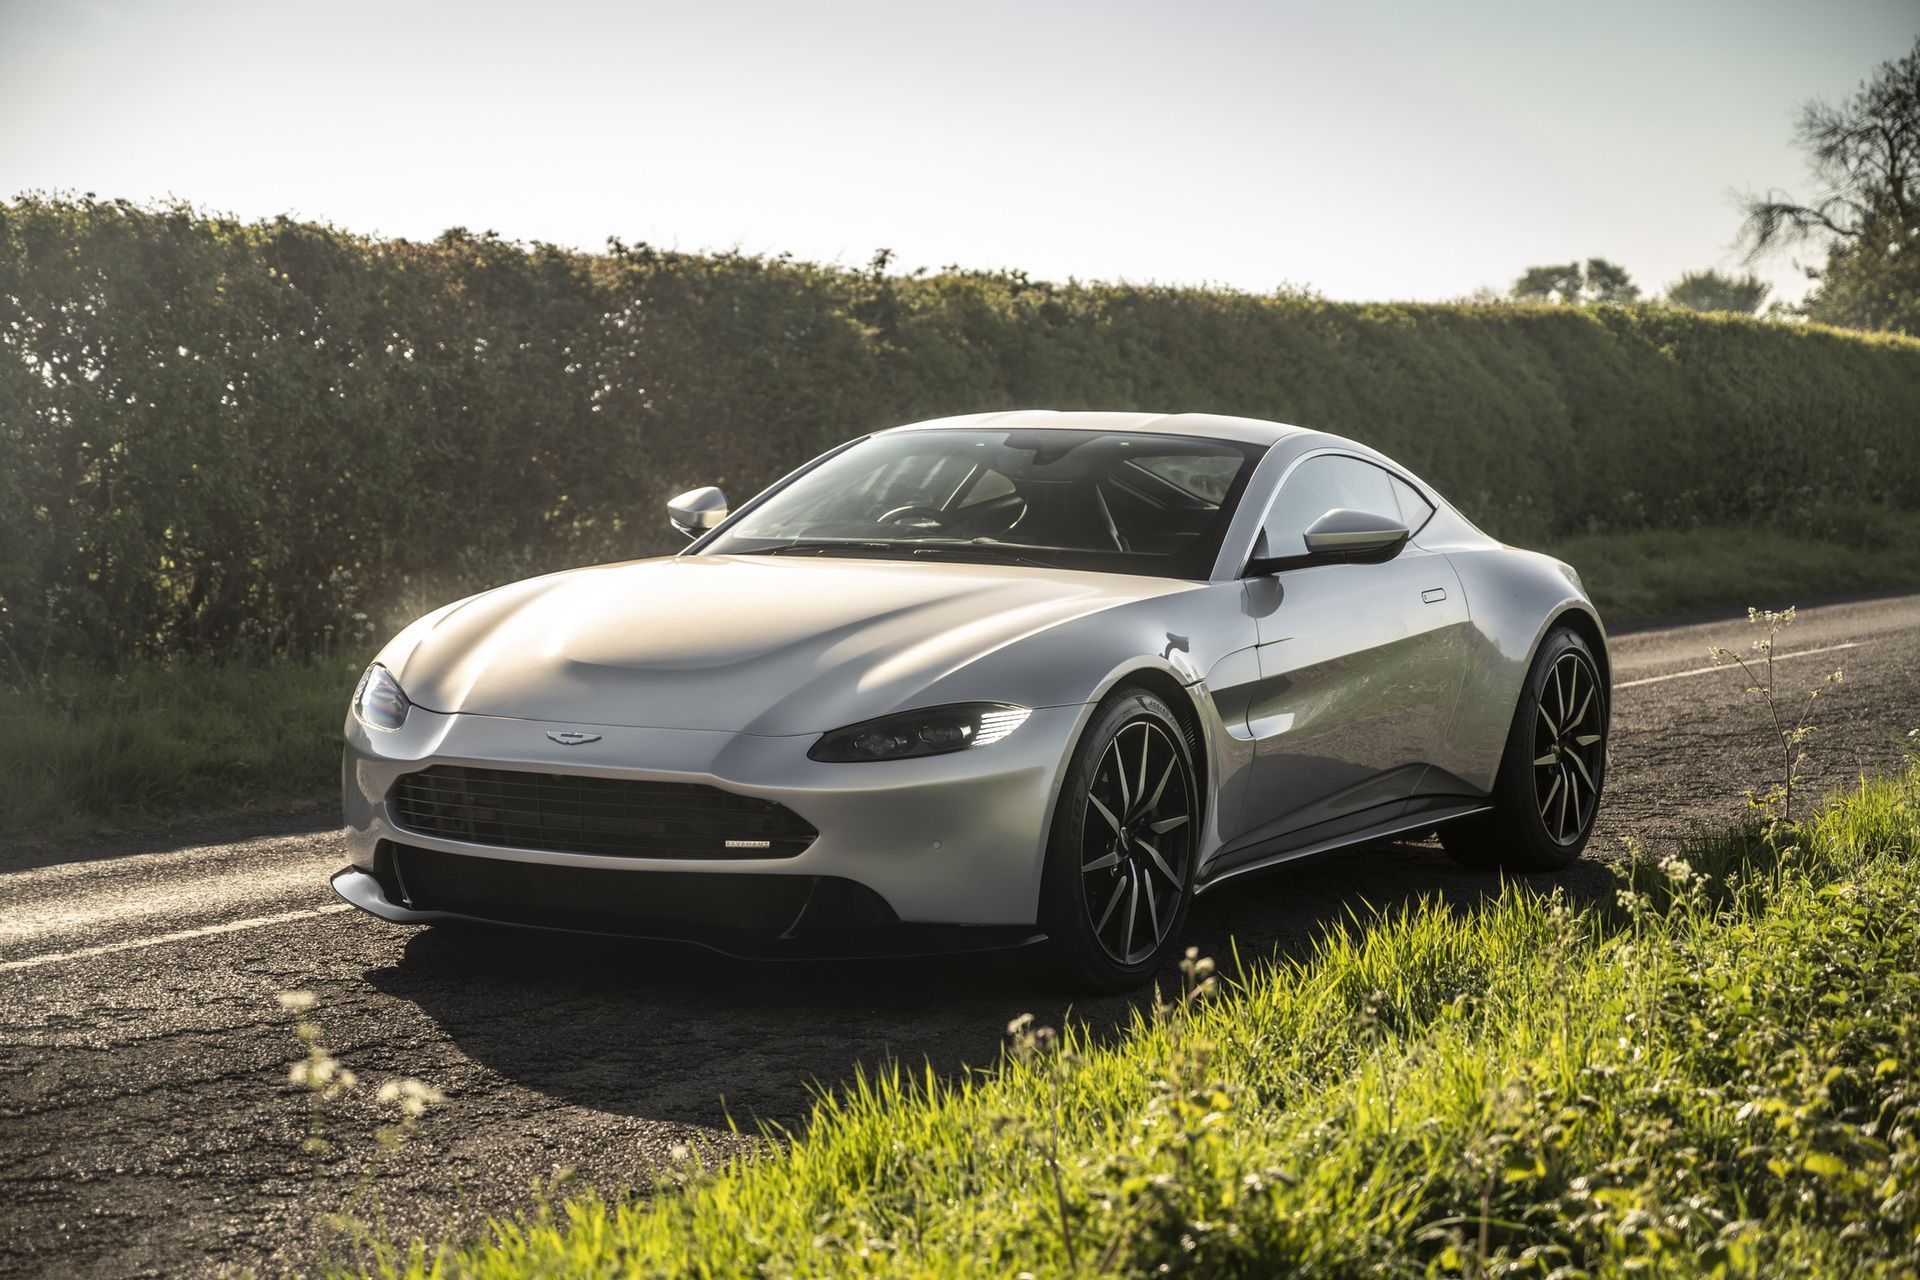 8.-Revenant-Automotive-Aston-Martin-Vantage-bumper-side-profile-on-road